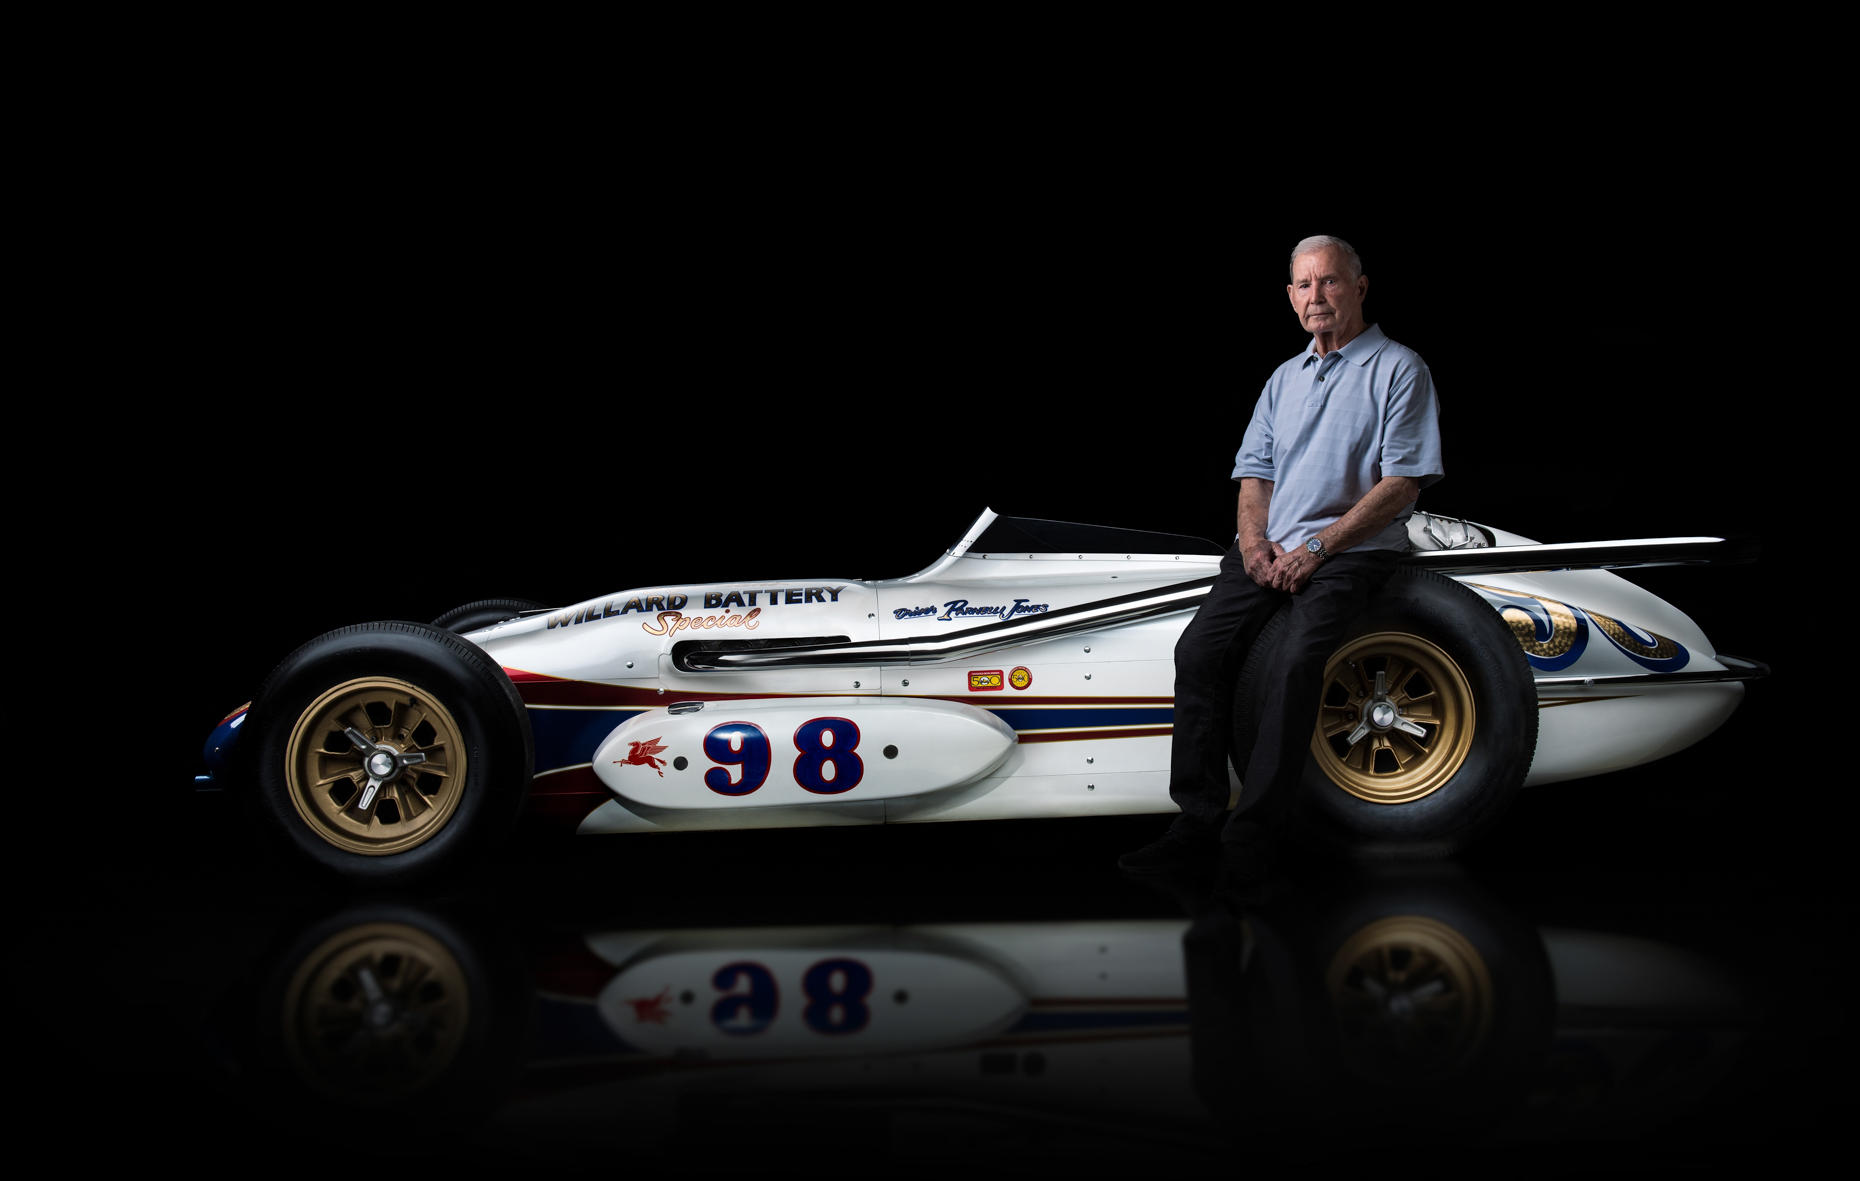 parnelli-jones-poses-on-indy-500-car-portrait